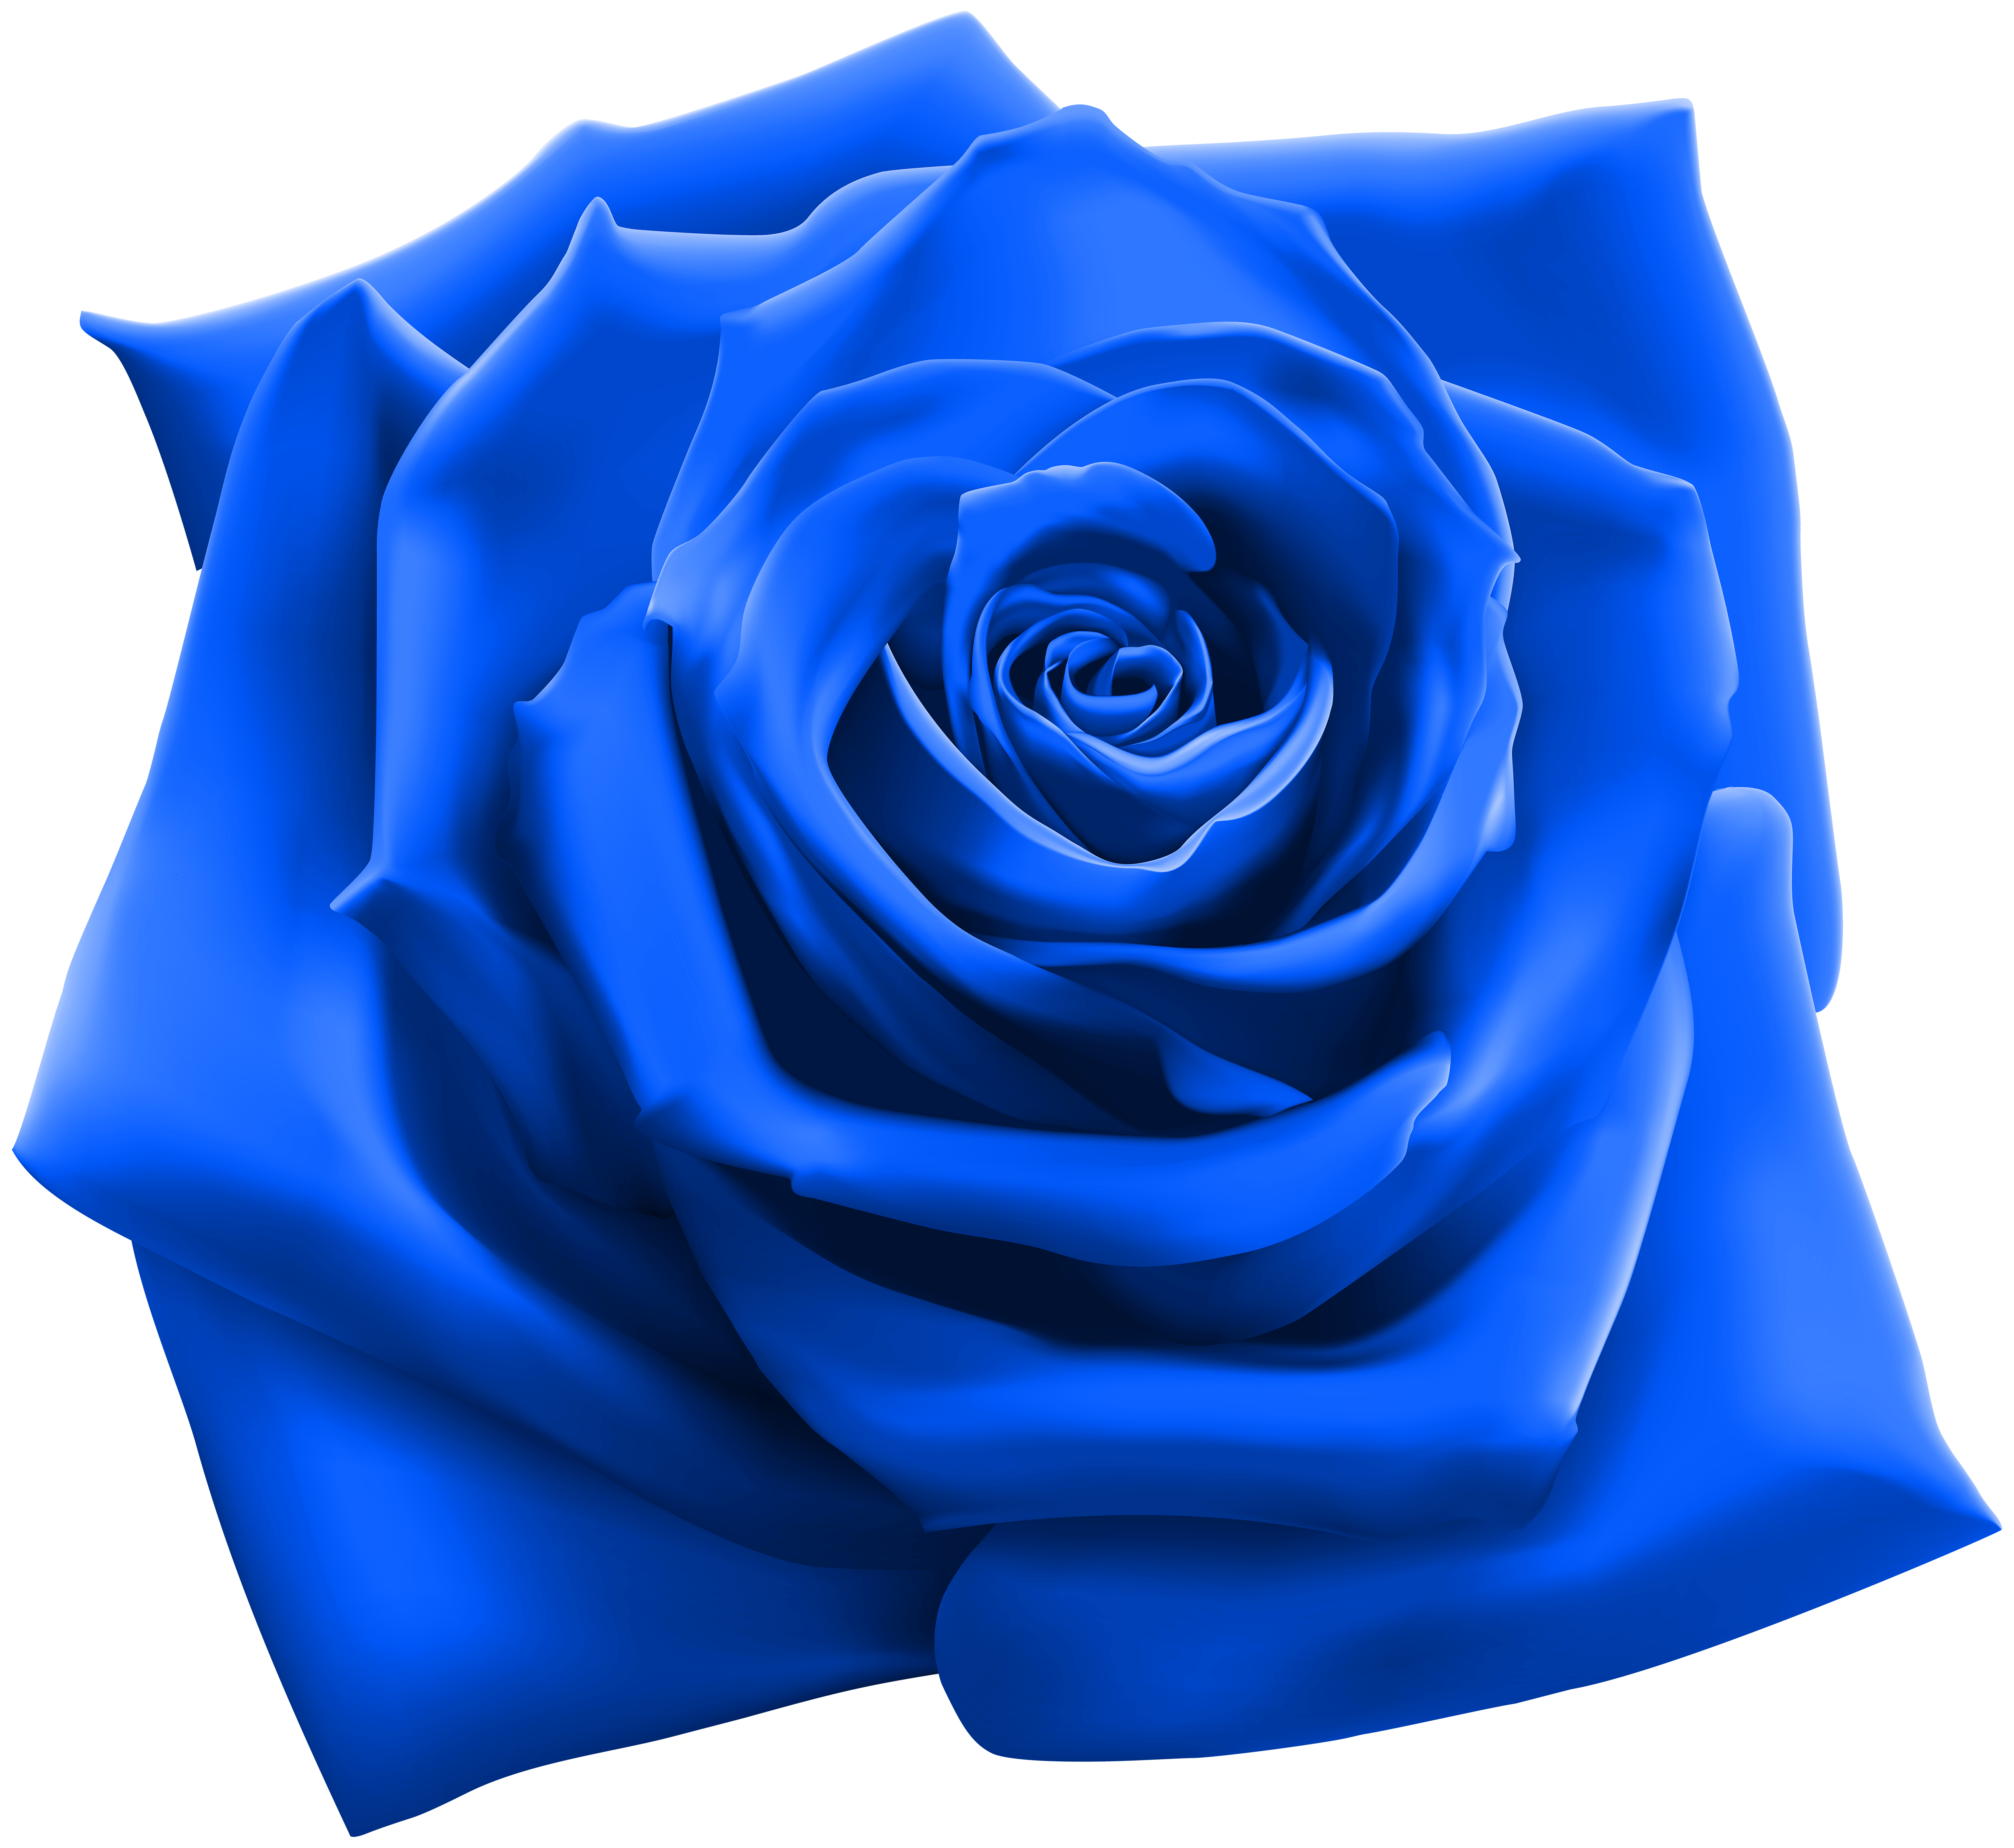 Blue clipart. Rose png image gallery